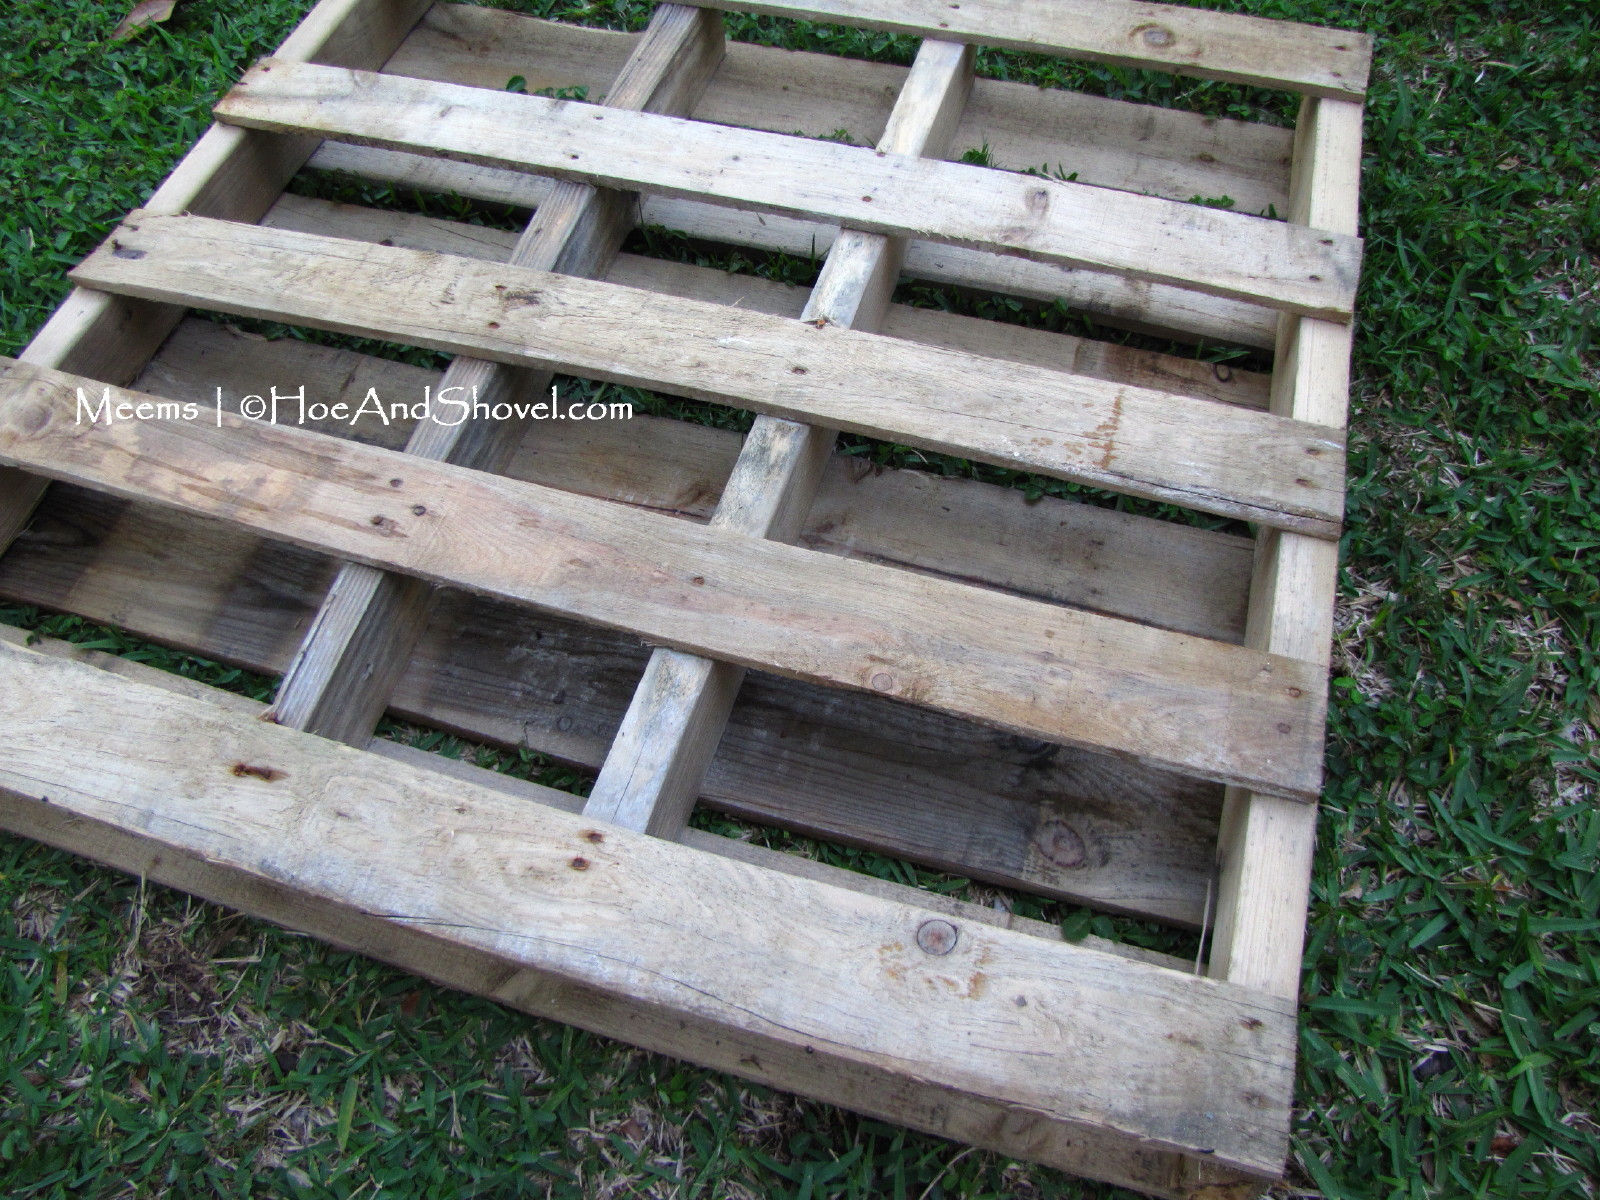 Hoe and shovel upcycled wooden pallet garden art for Pallet fire pit